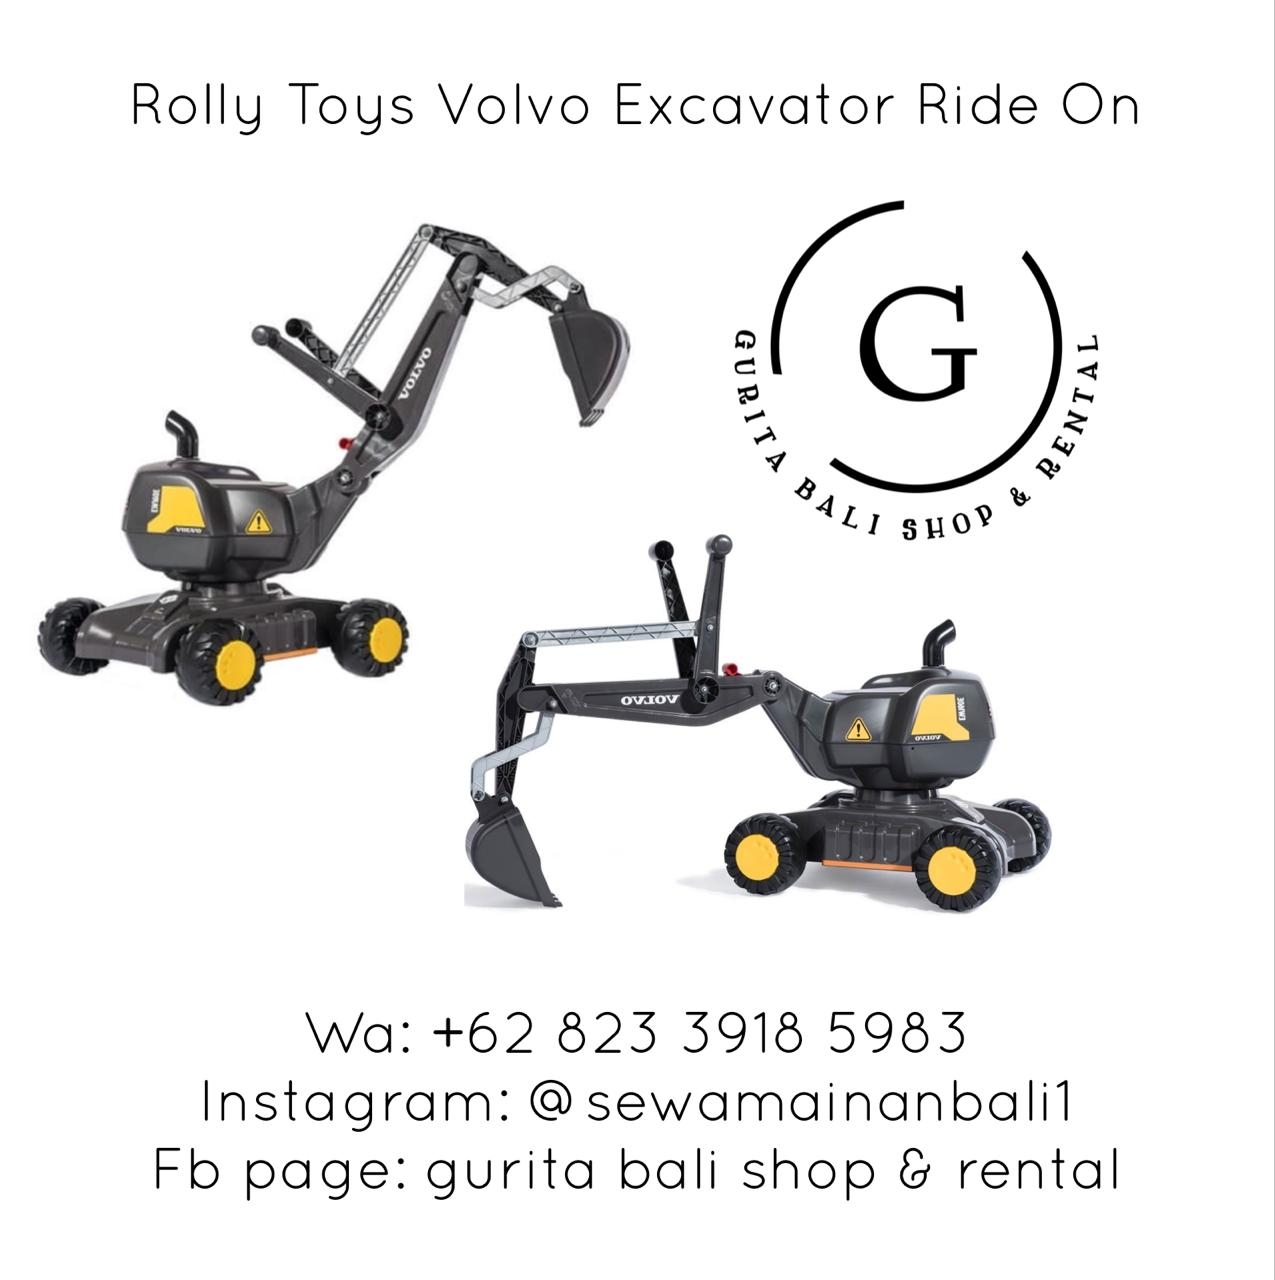 ROLLY TOYS VOLVO EXCAVATOR RIDE ON